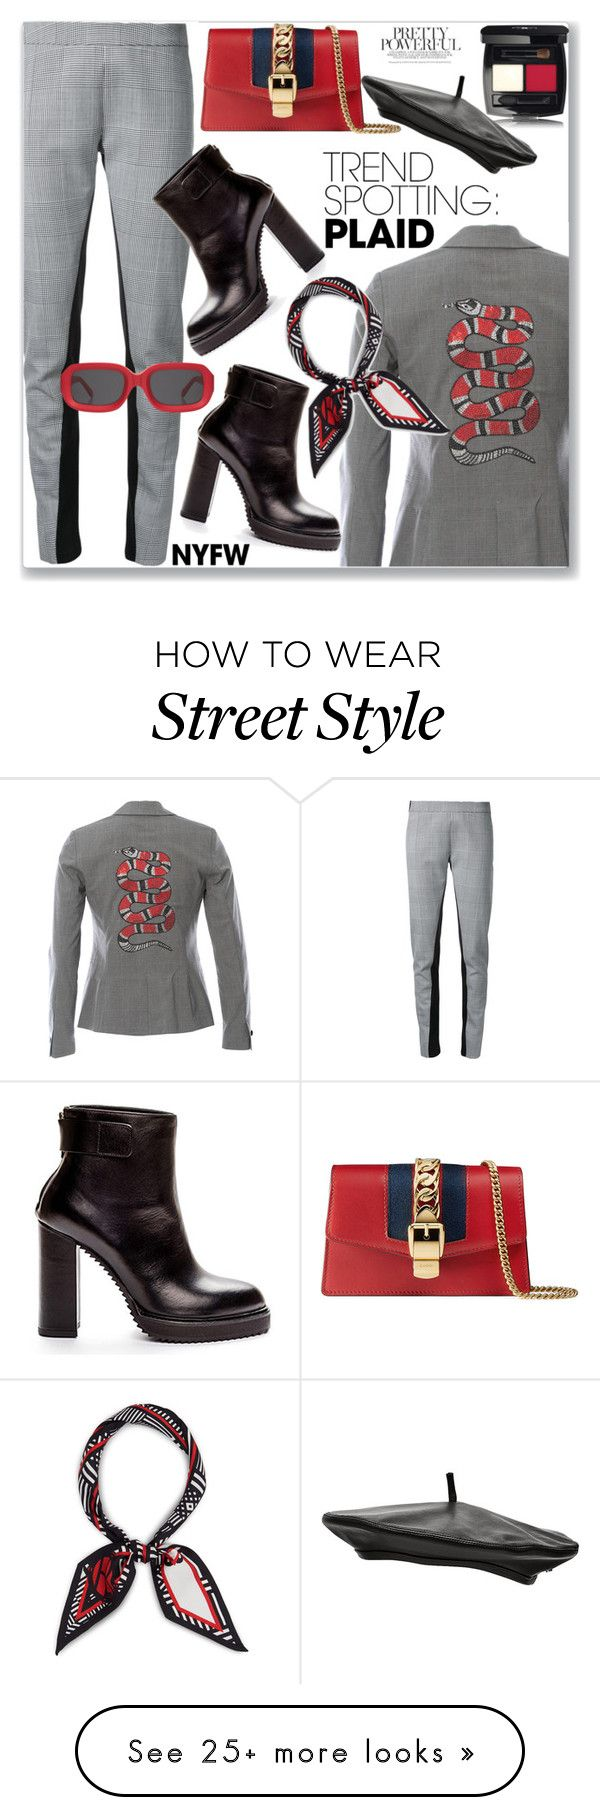 """NYFW Trend Spotting: Plaid (Street Style)"" by jecakns on Polyvore featuring Gareth Pugh, Hipchik, Gucci, Henri Bendel and Witchery"